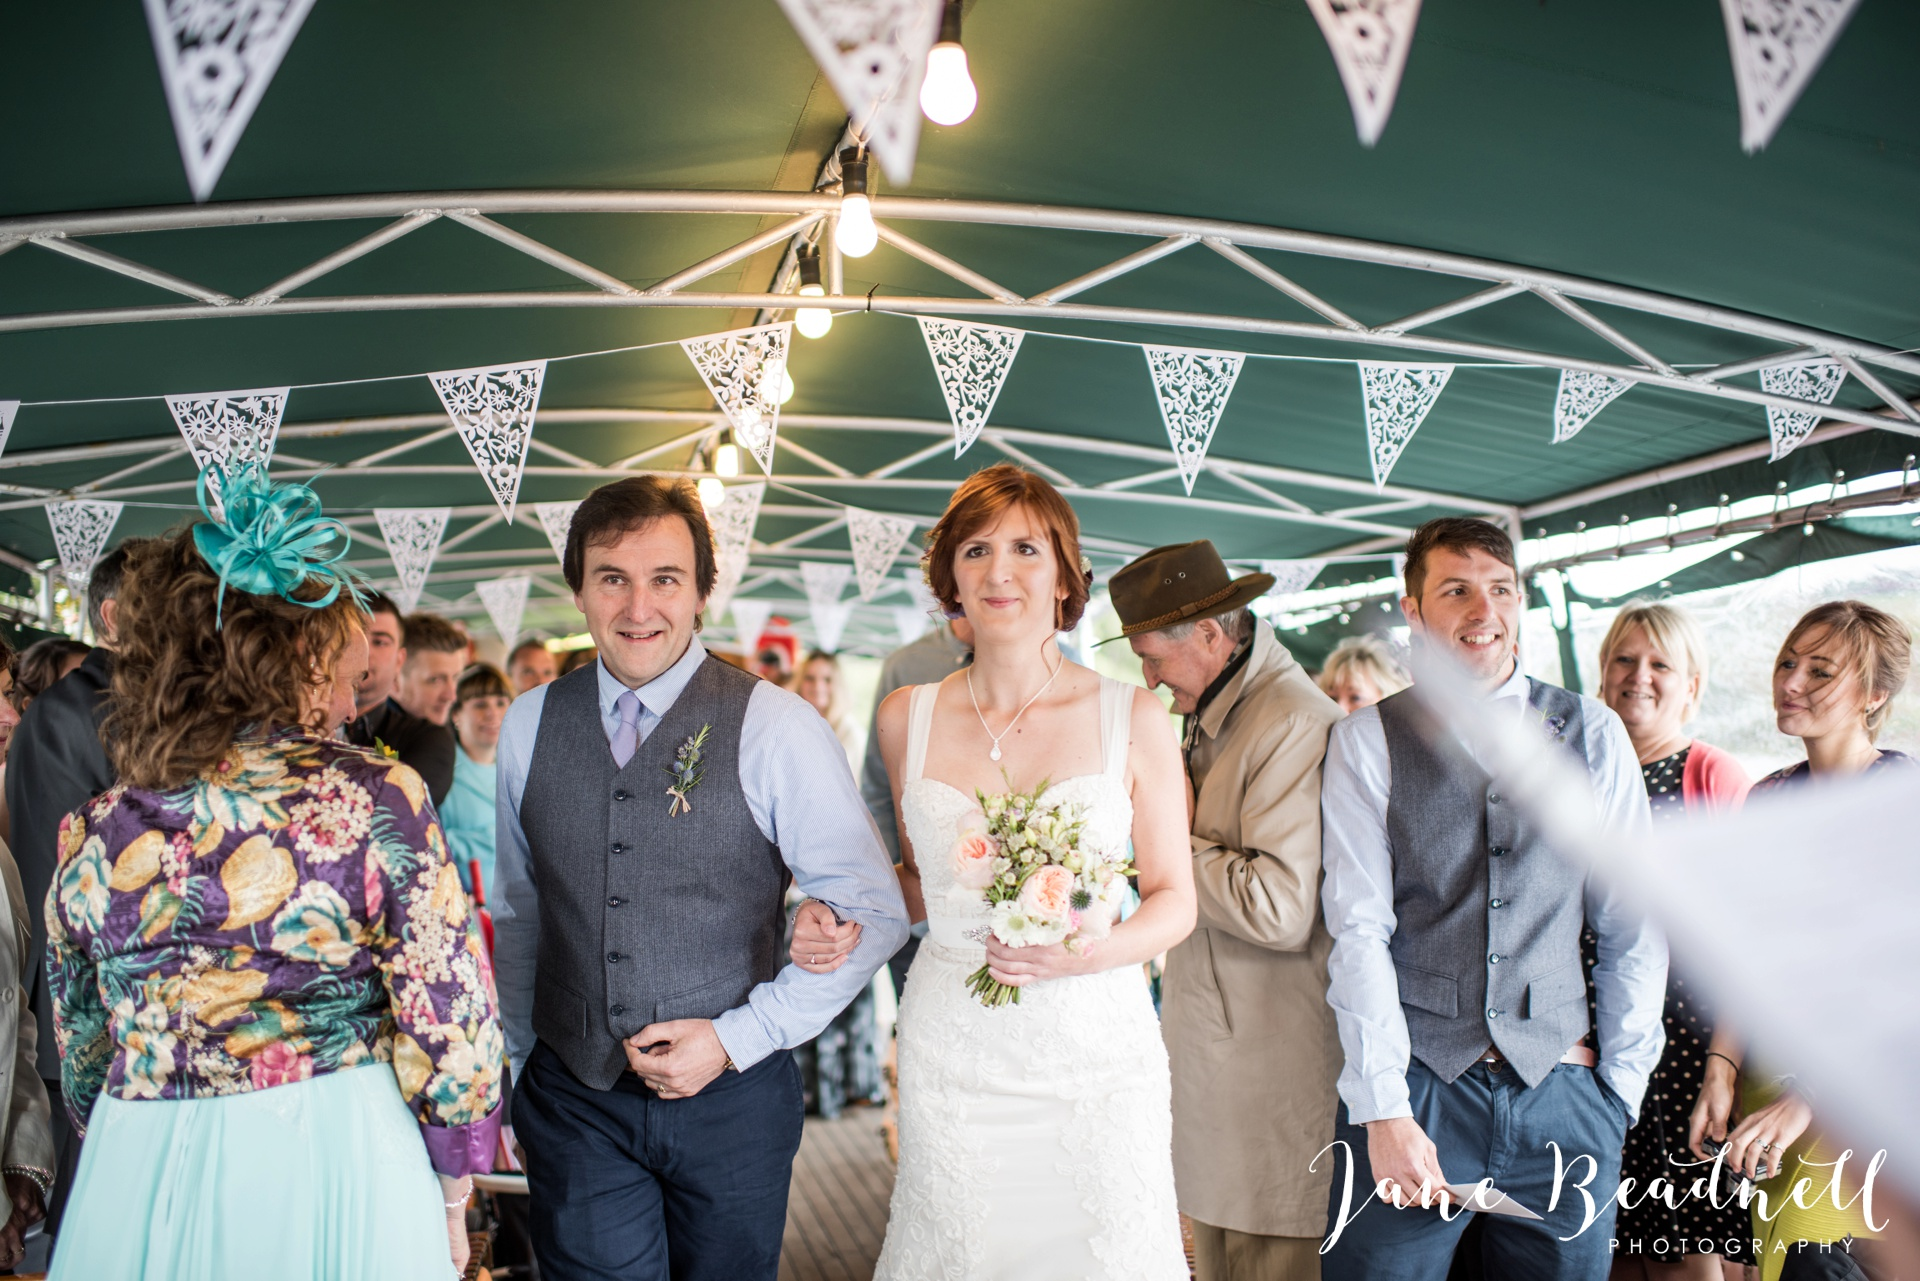 Jane Beadnell fine art wedding photographer Lake Ullswater Lake District_0010